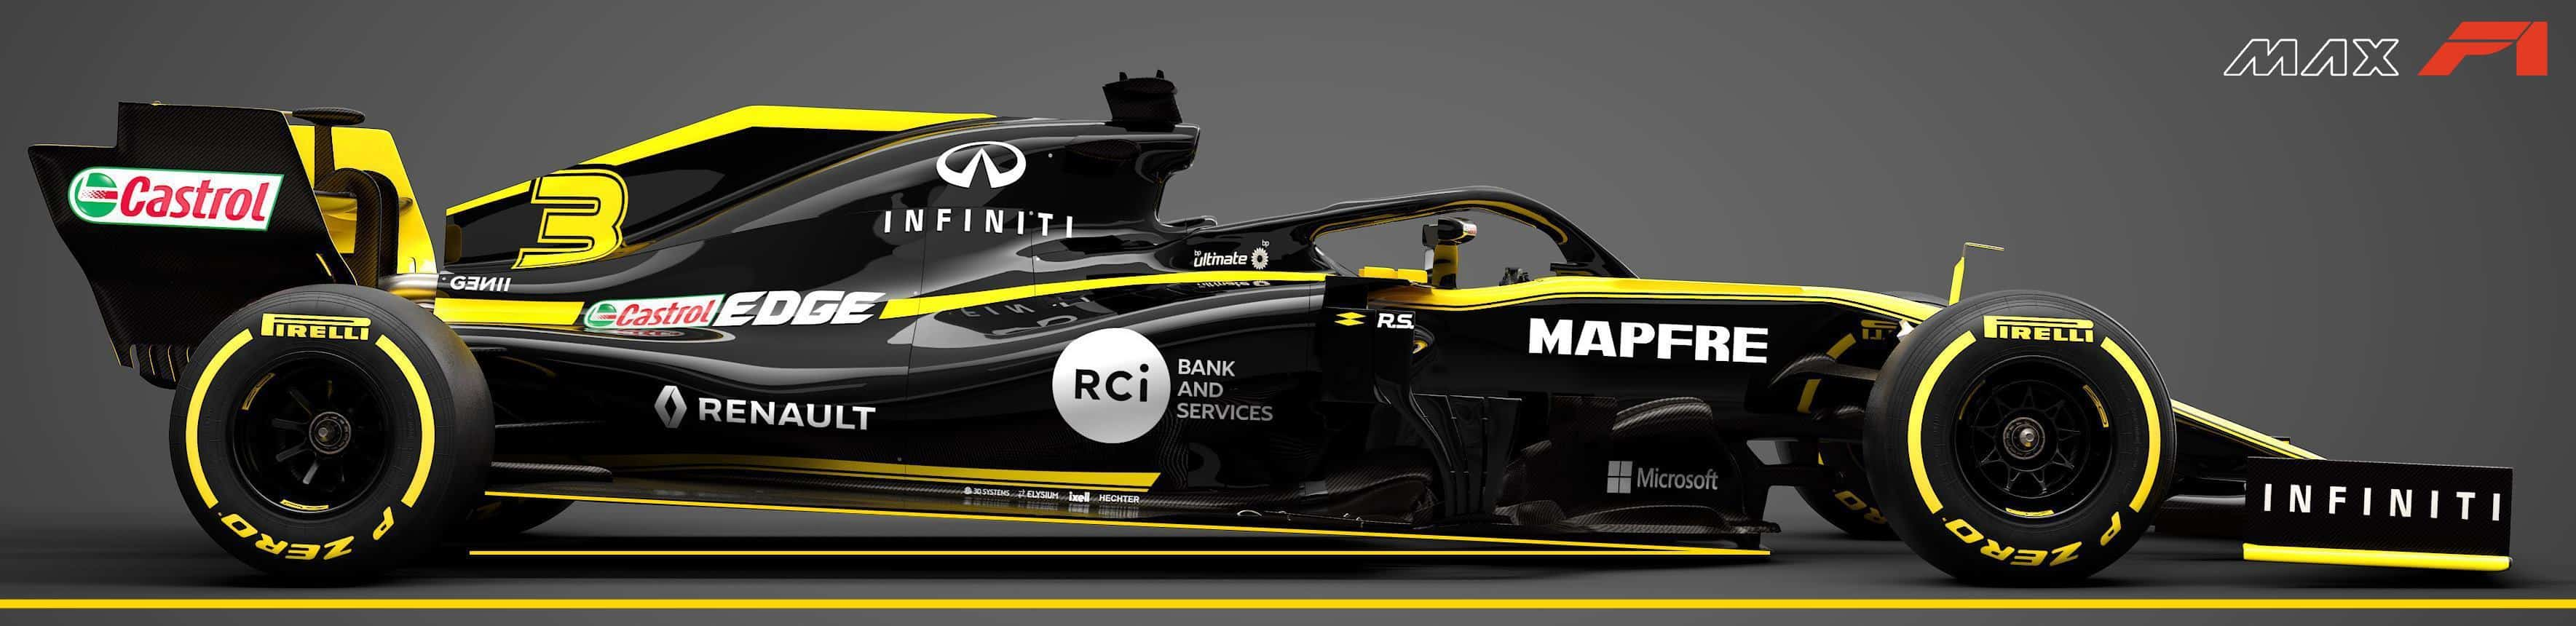 small resolution of 2019 renault rs19 side view big rake edited by maxf1net